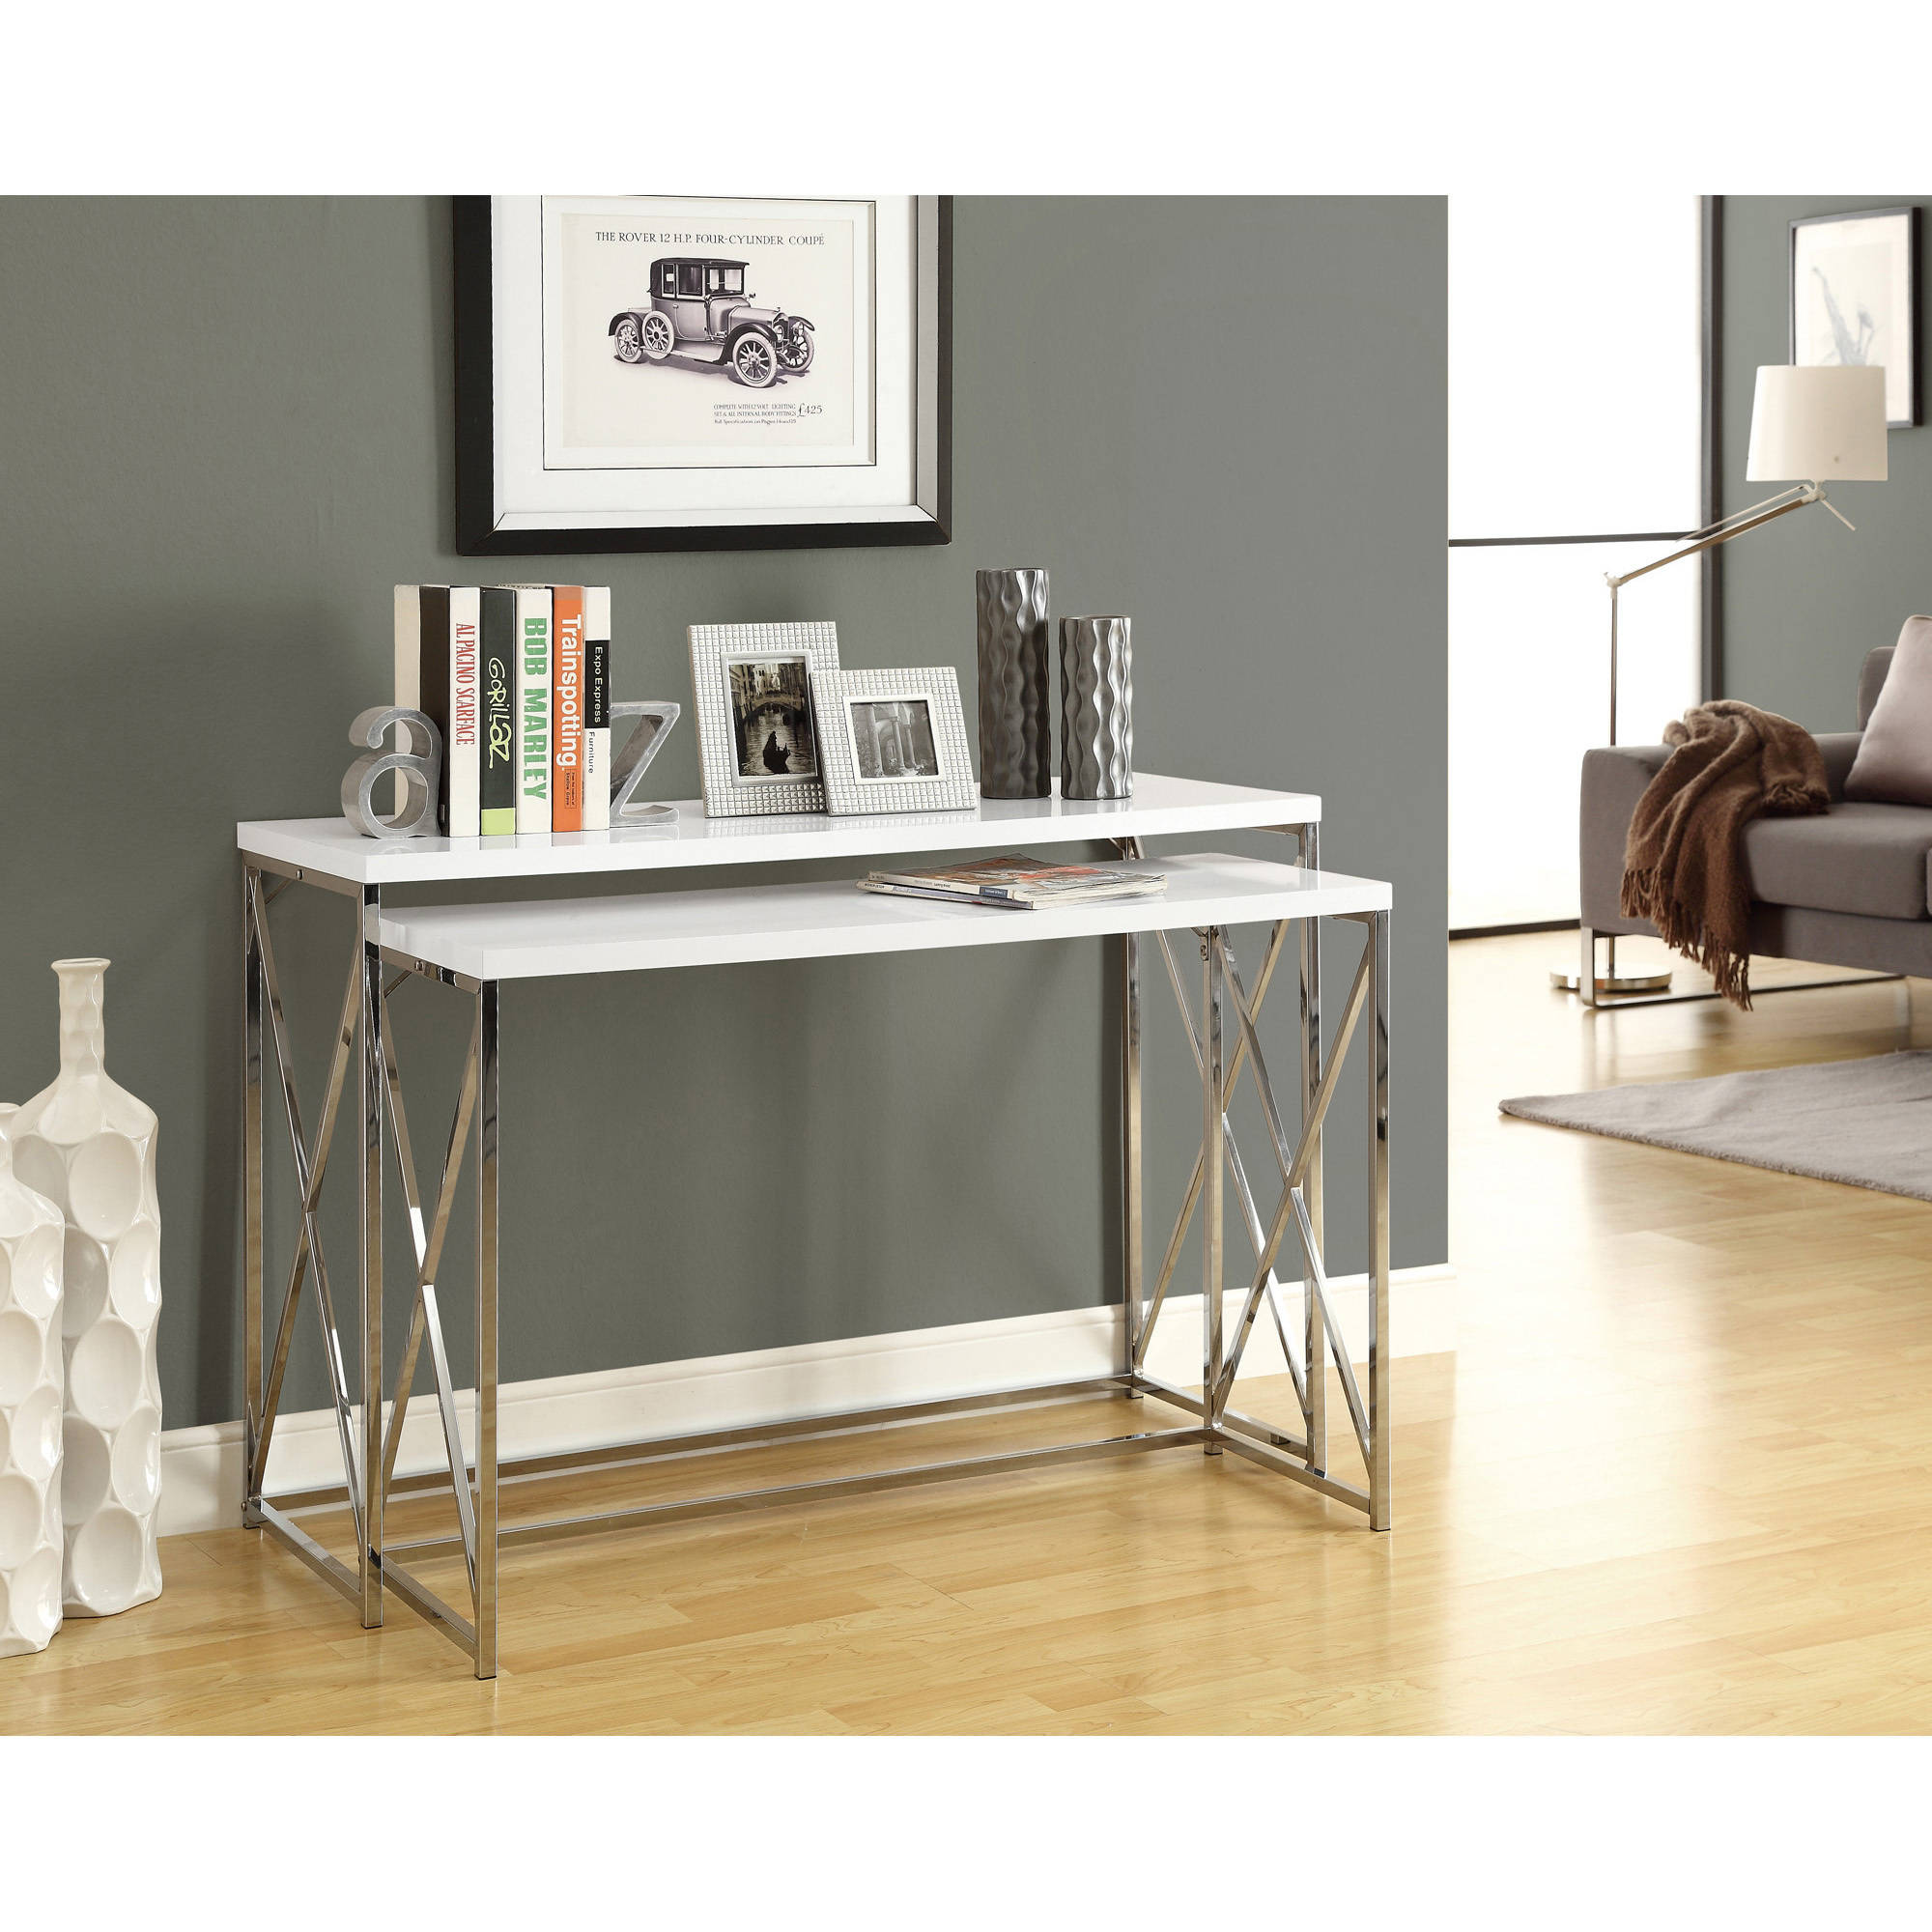 Monarch Console Table 2Pcs / Glossy White With Chrome Metal   Walmart.com